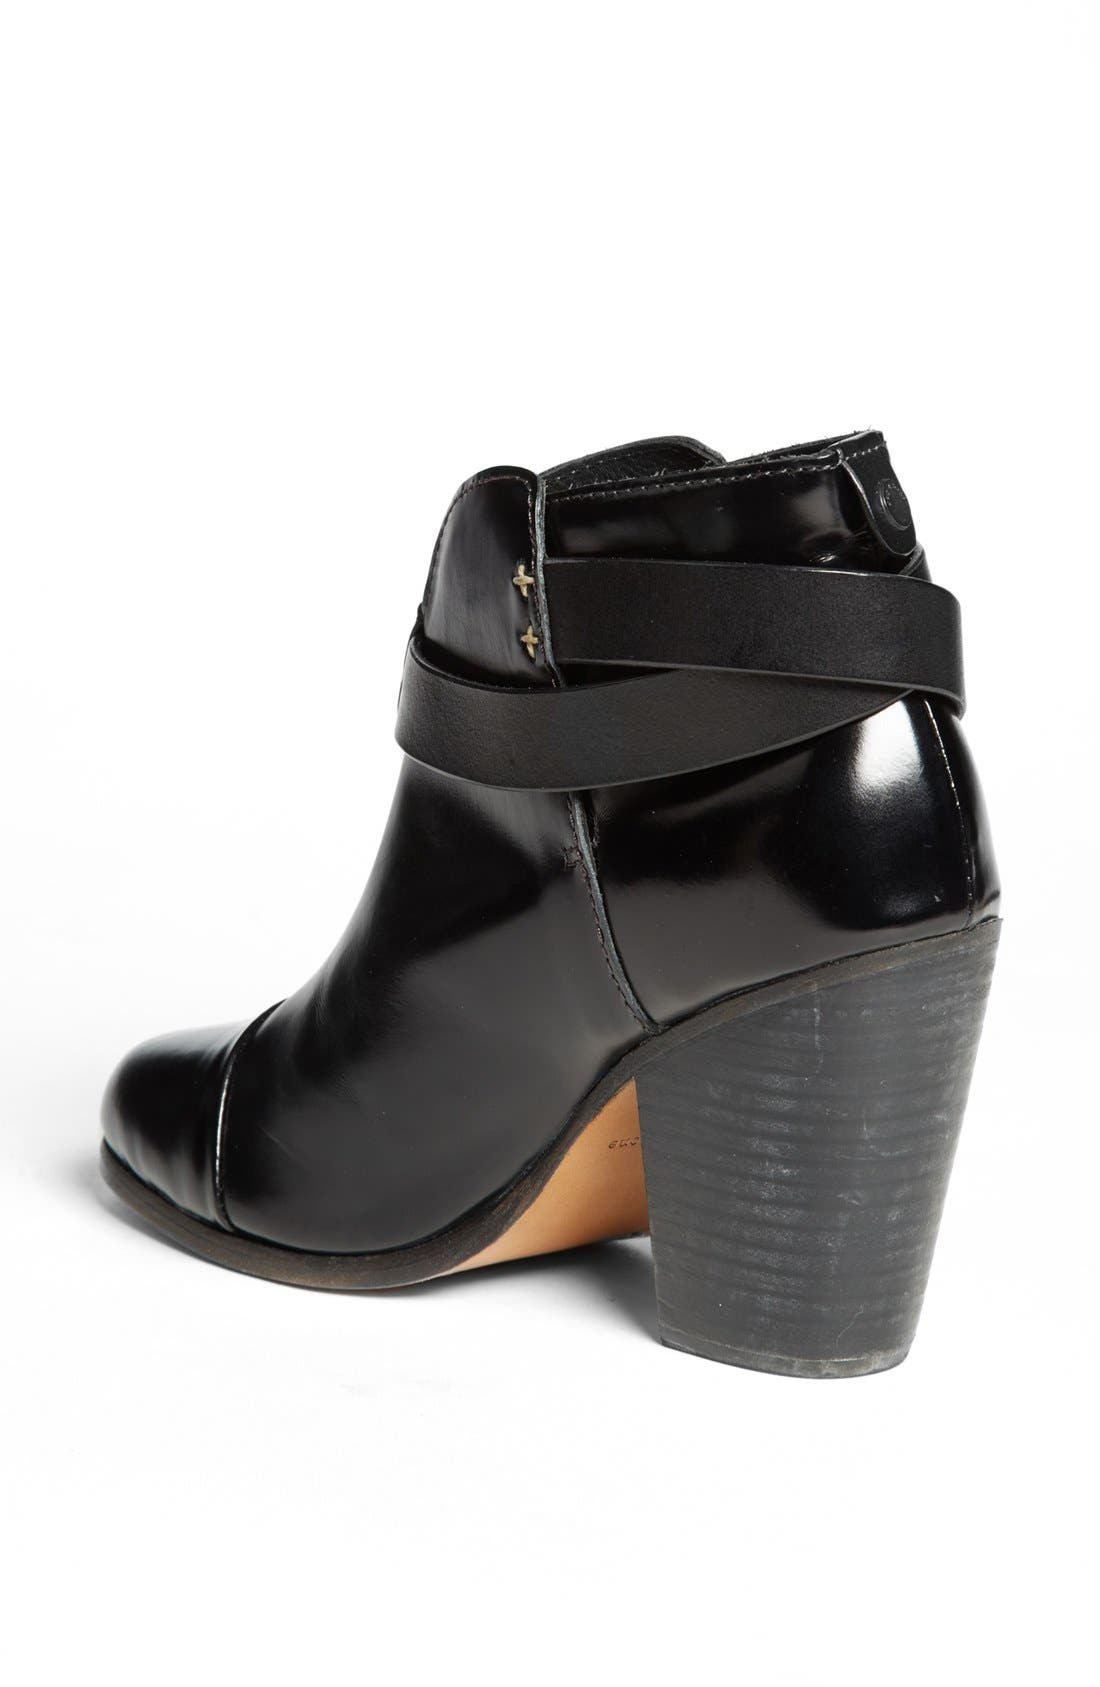 RAG & BONE, 'Harrow' Bootie, Alternate thumbnail 4, color, 001